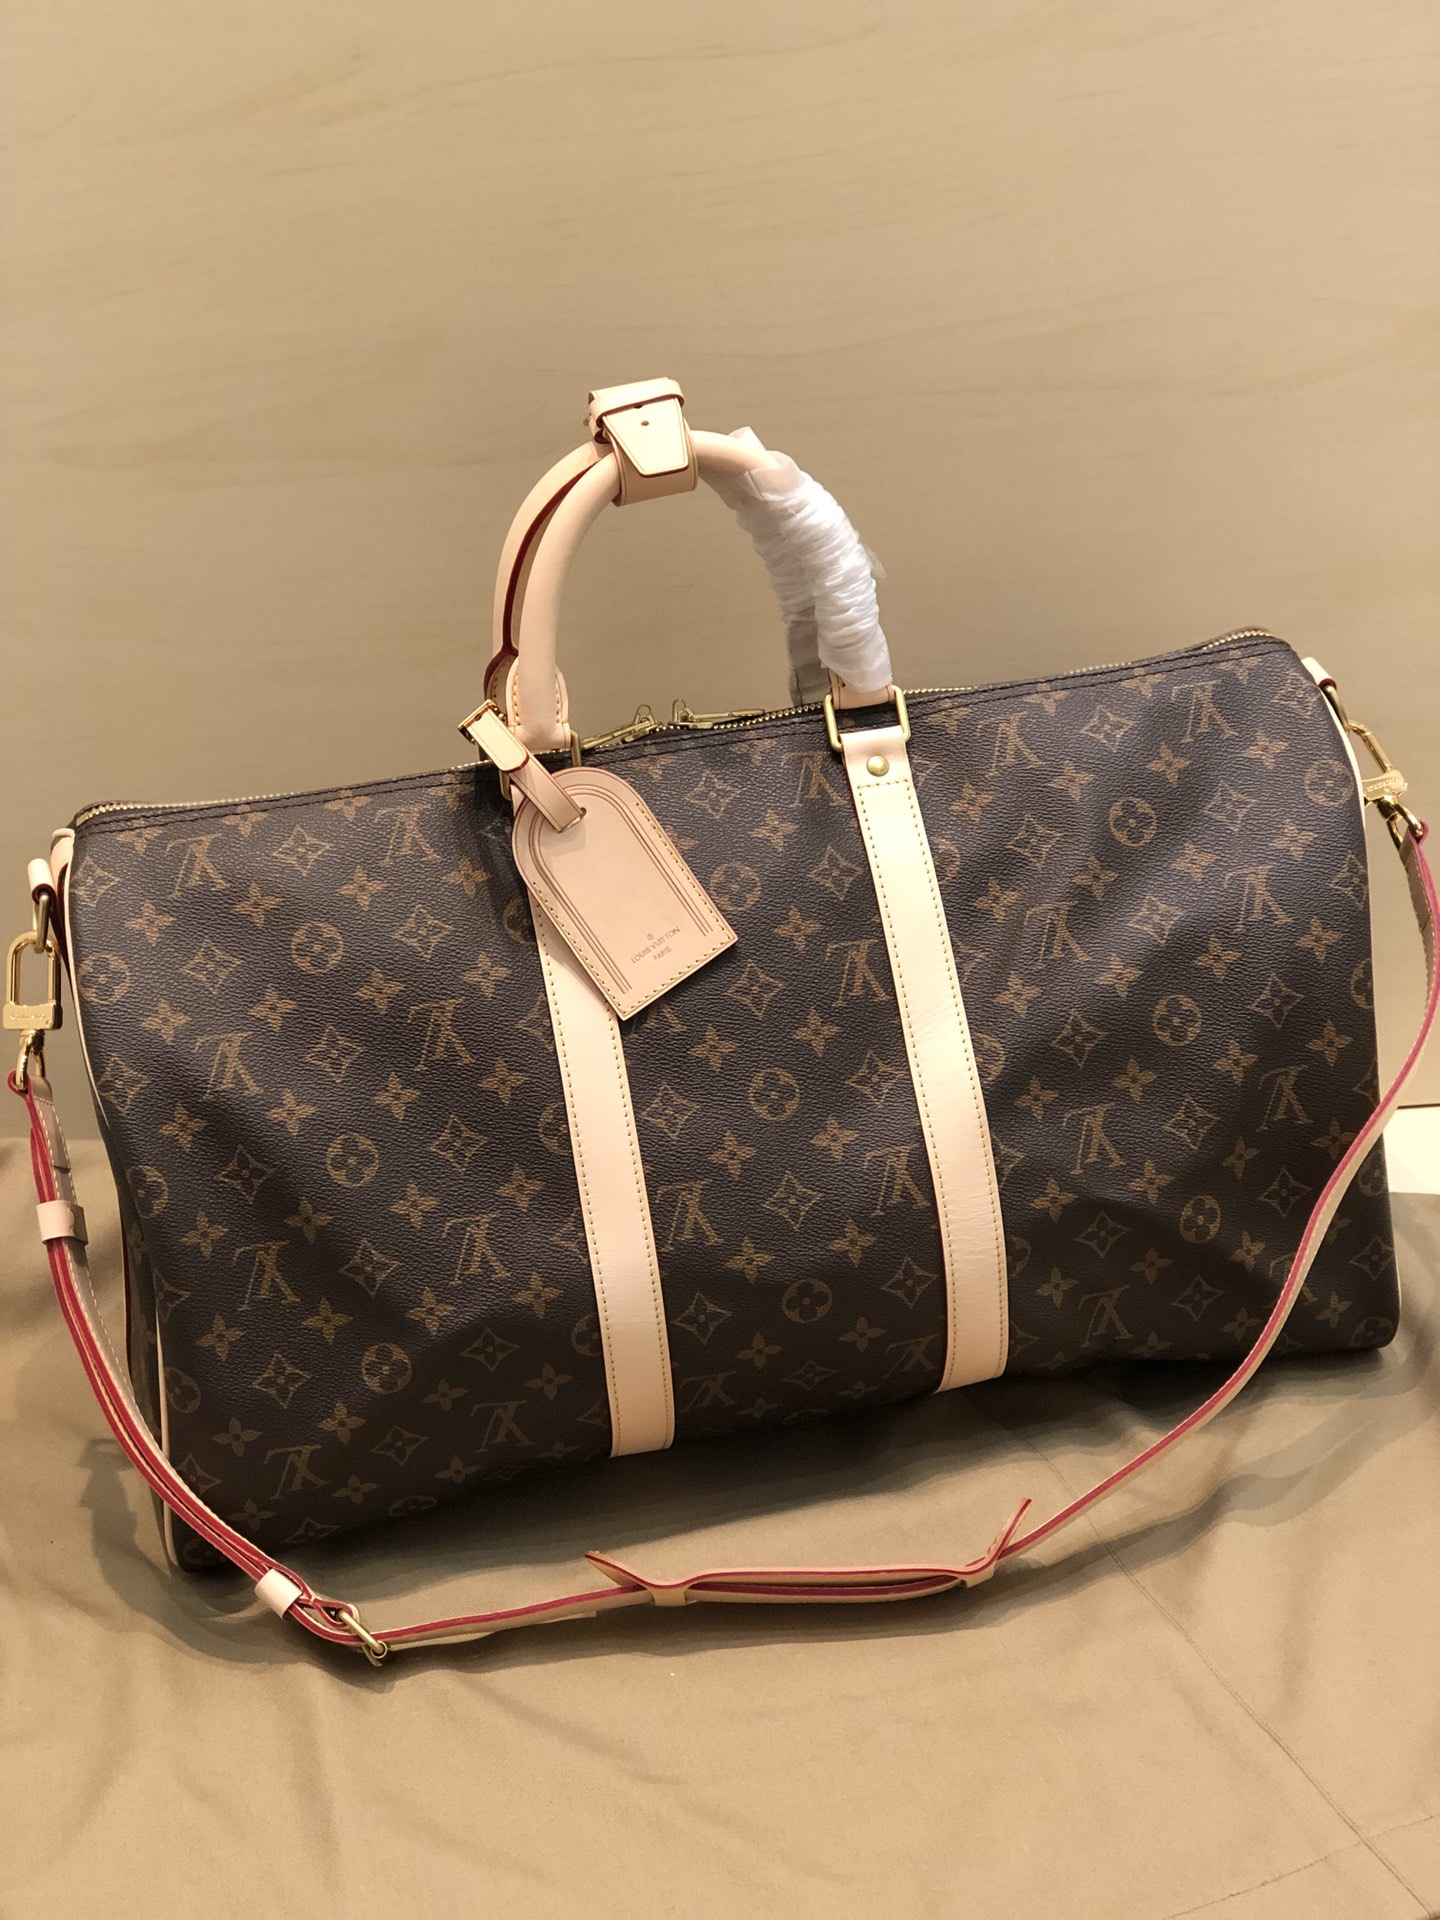 Replica Louis Vuitton Keepall Bandouliere-3 45 50 55